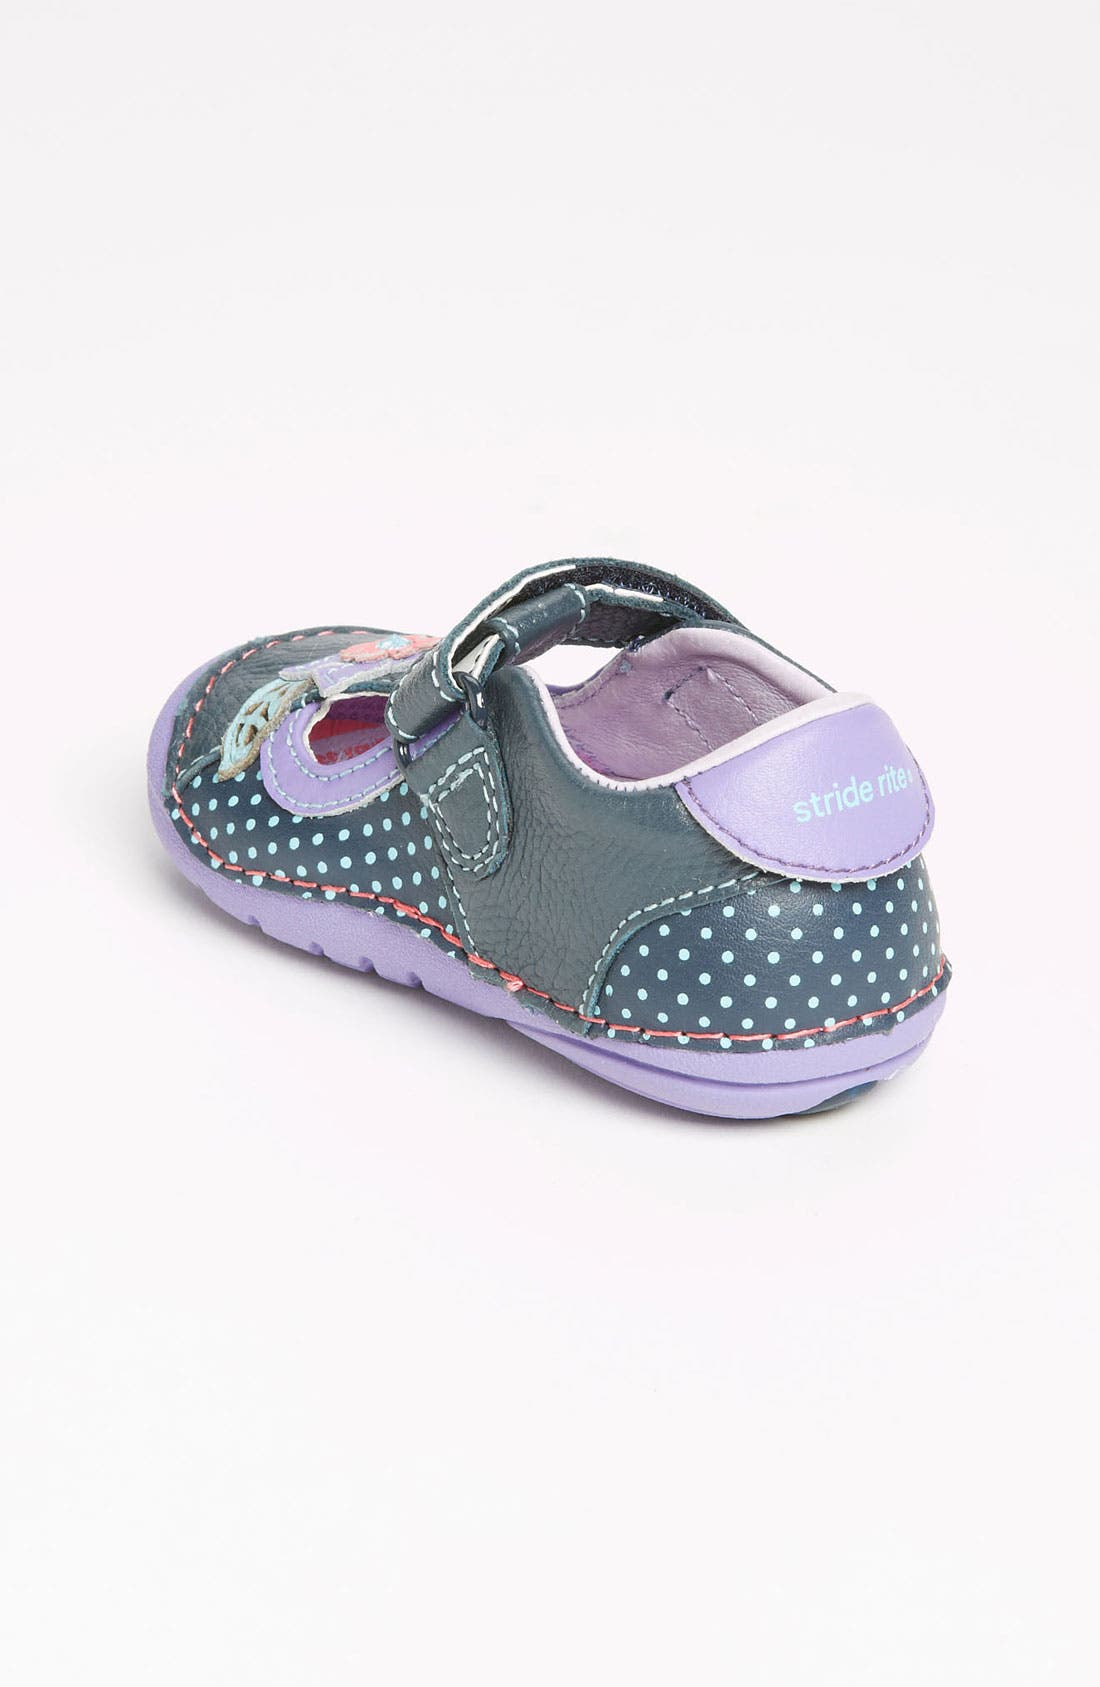 Alternate Image 2  - Stride Rite 'Viola' Sneaker (Baby & Walker)